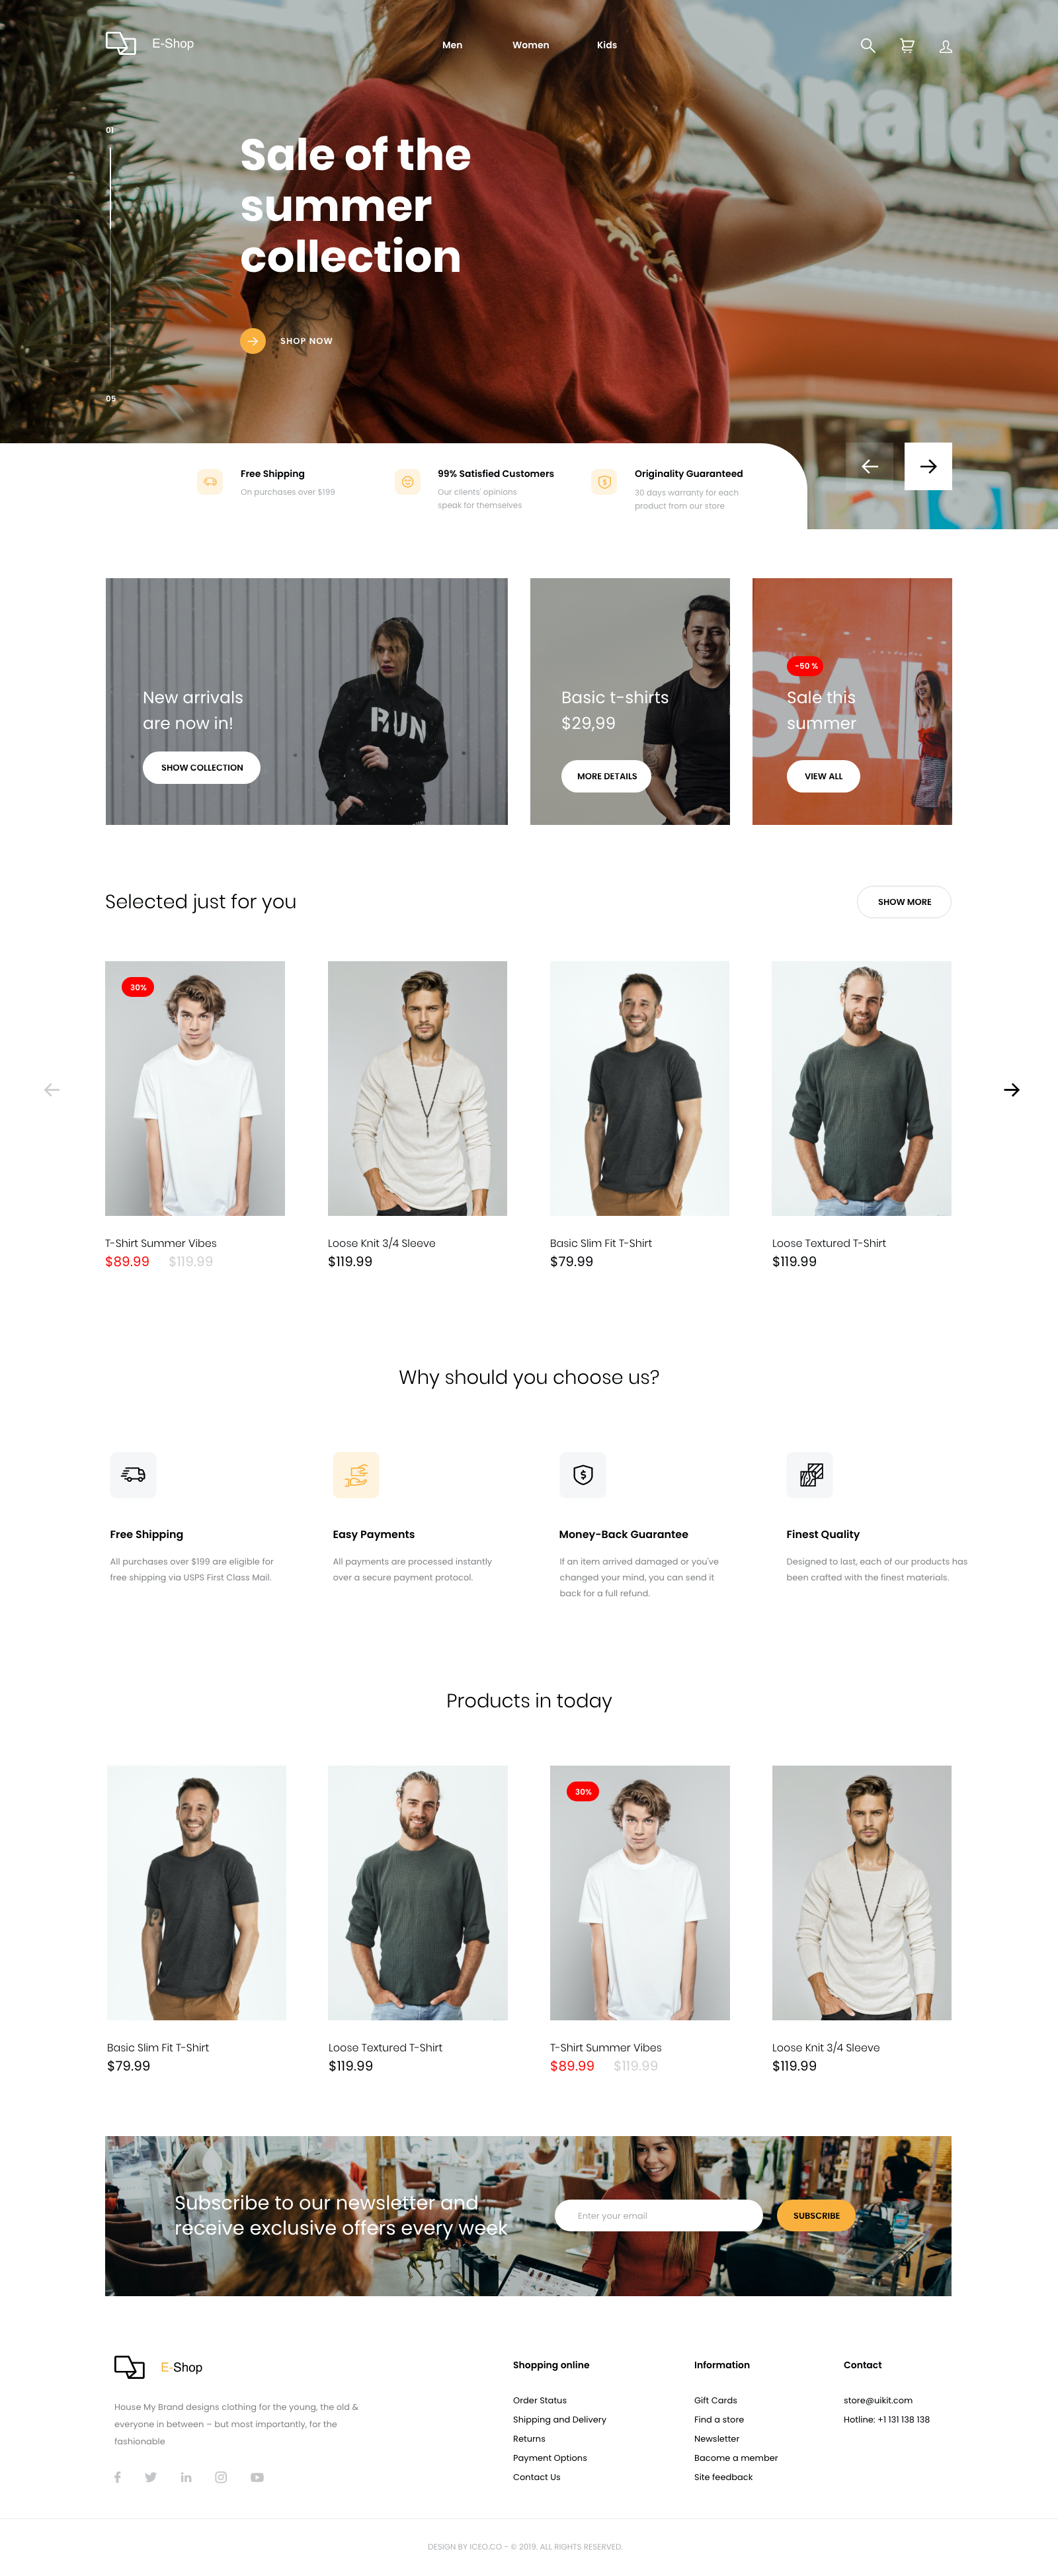 Responsive eCommerce UI Kit for Adobe XD - Designed for both web and mobile, this UI kit redefines user experience through simplicity and calculated design choices. This freebie contains everything an online store needs to get up and running.